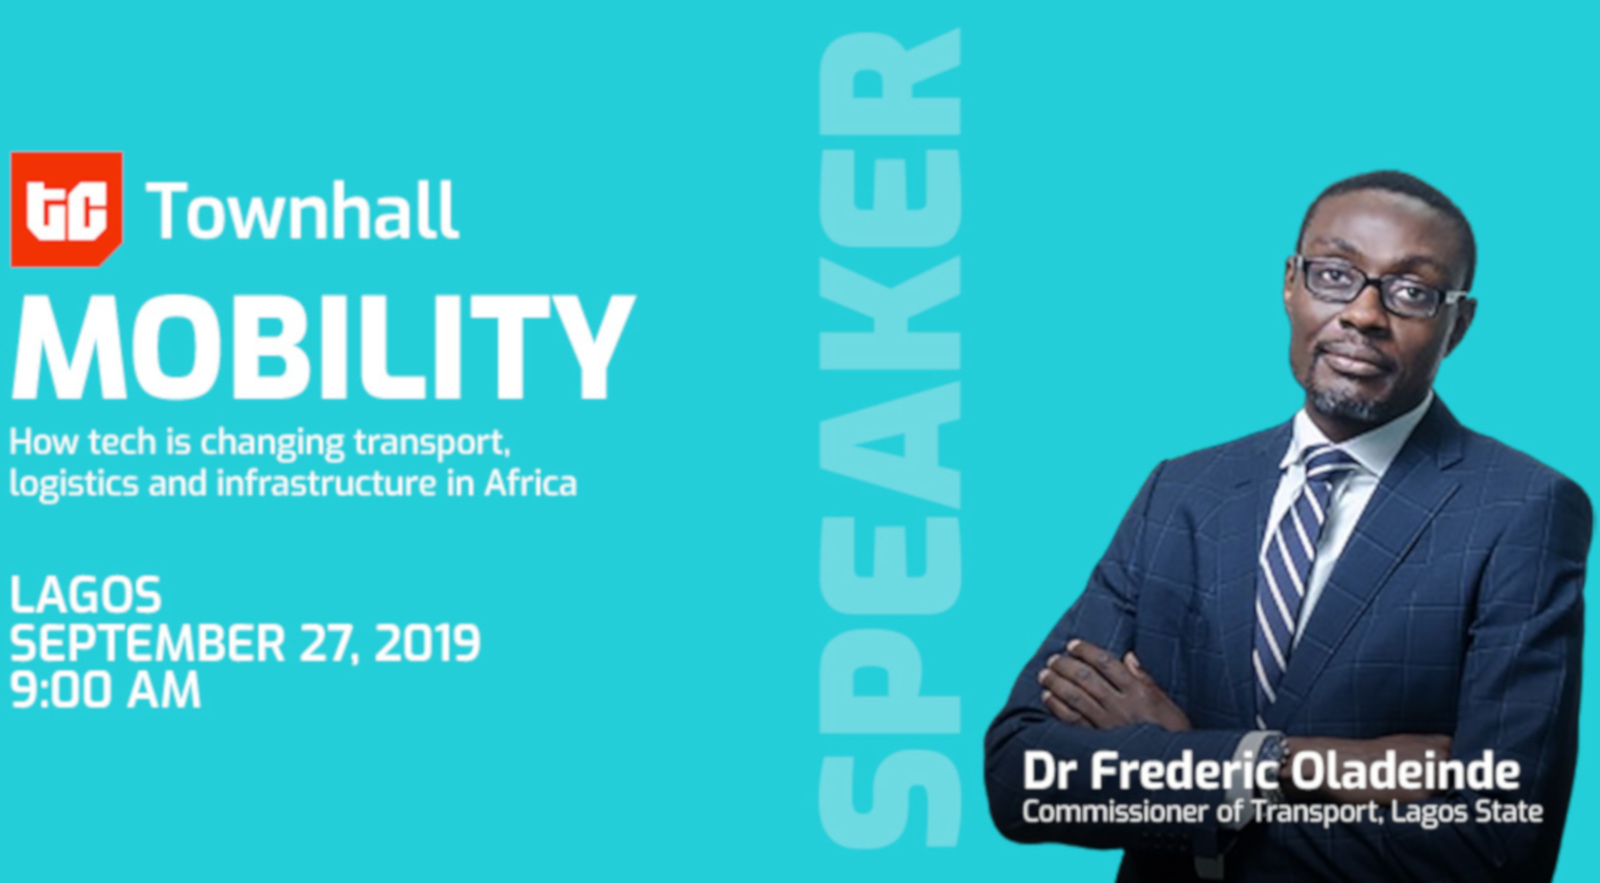 TechCabal's Friday townhall event to focus on transport, logistics tech in Africa - Ventureburn